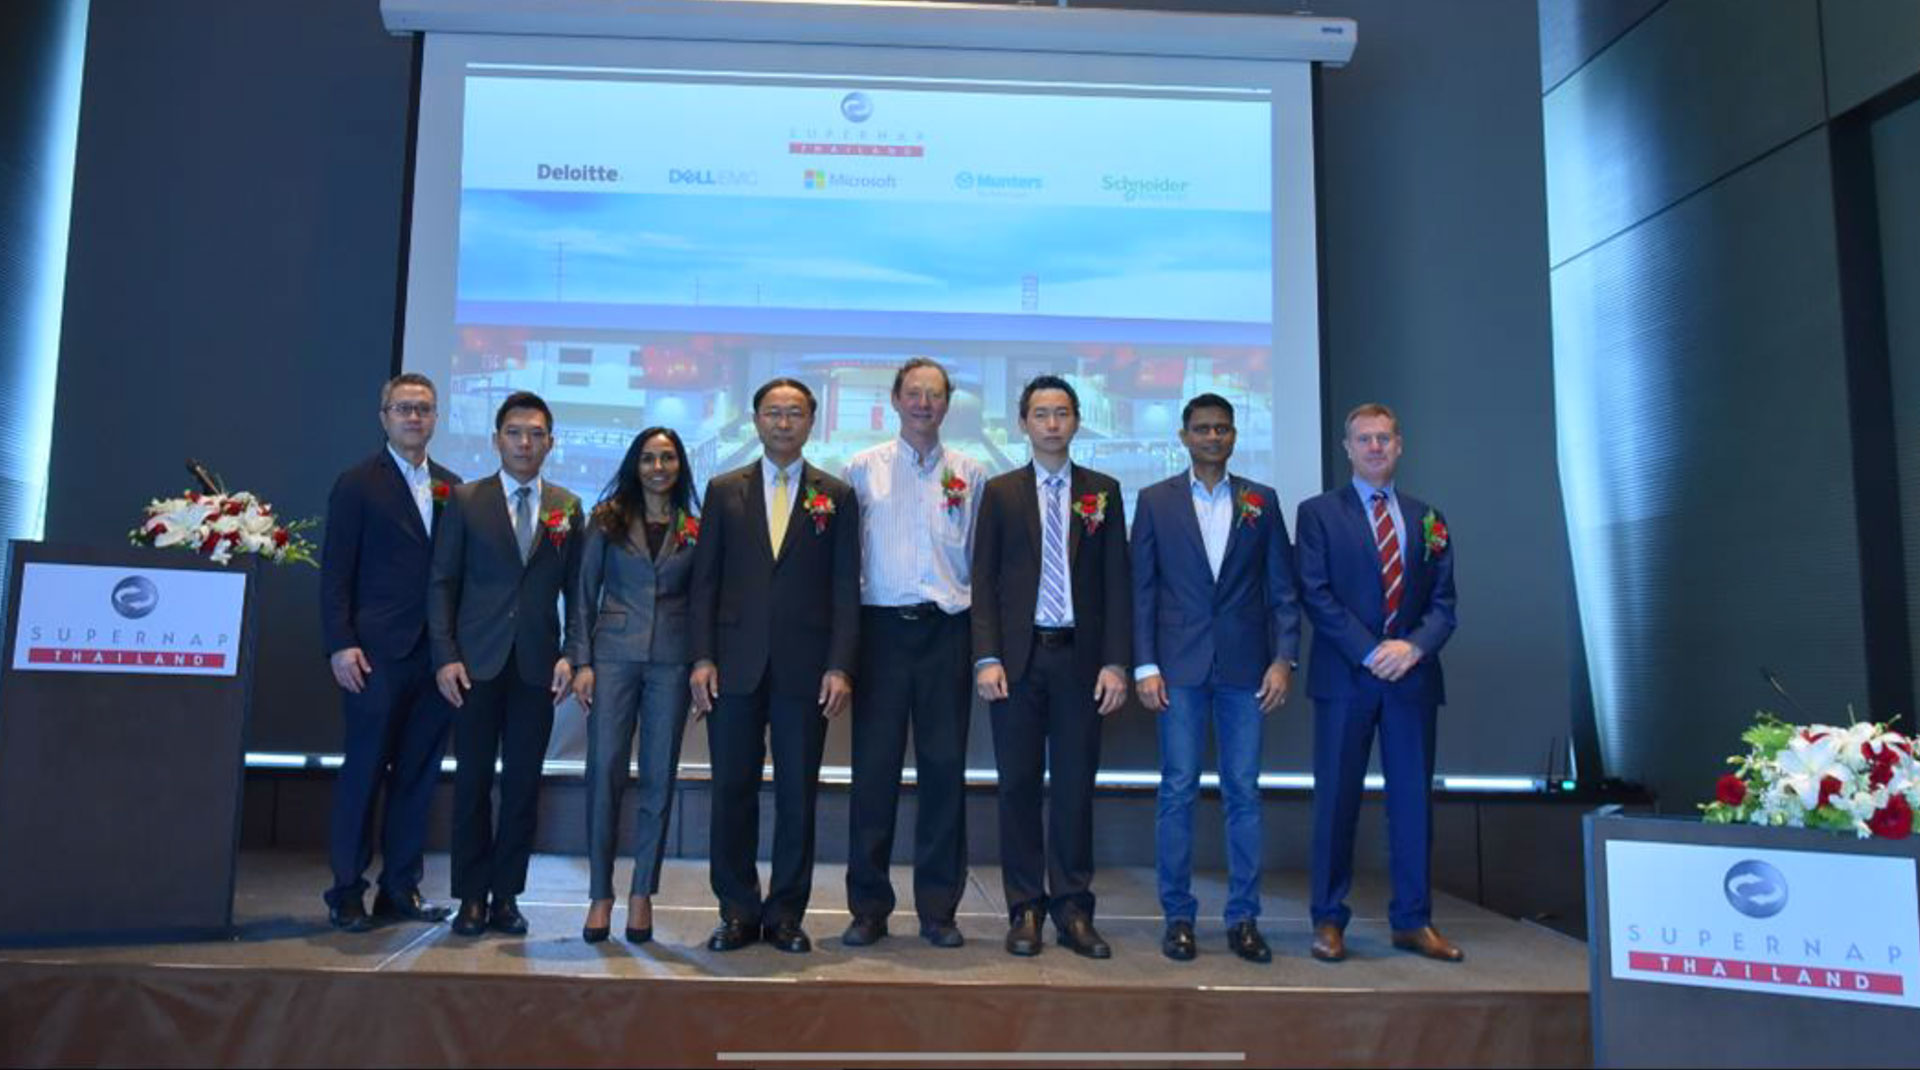 SUPERNAP (Thailand) and Affiliate Partners aim for Data Security in Digital Transformation Economy